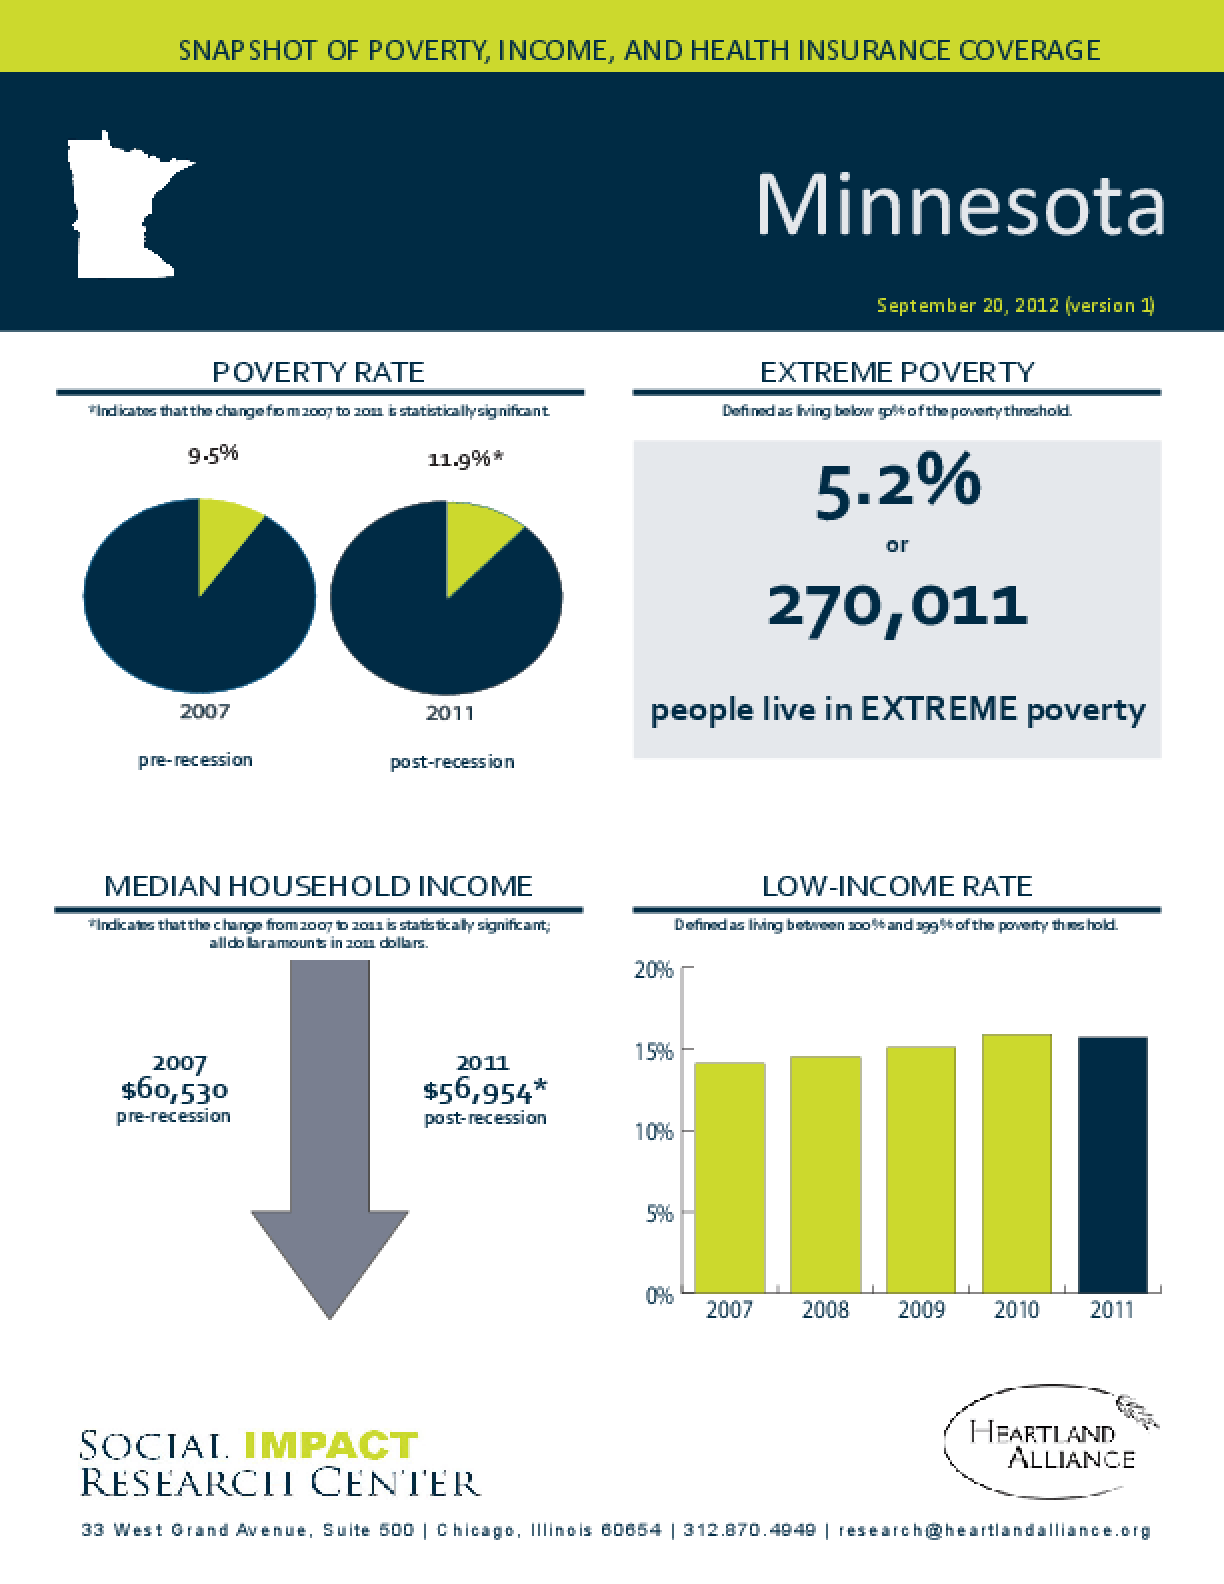 Minnesota: Snapshot of Poverty, Income, and Health Insurance Coverage - 2011